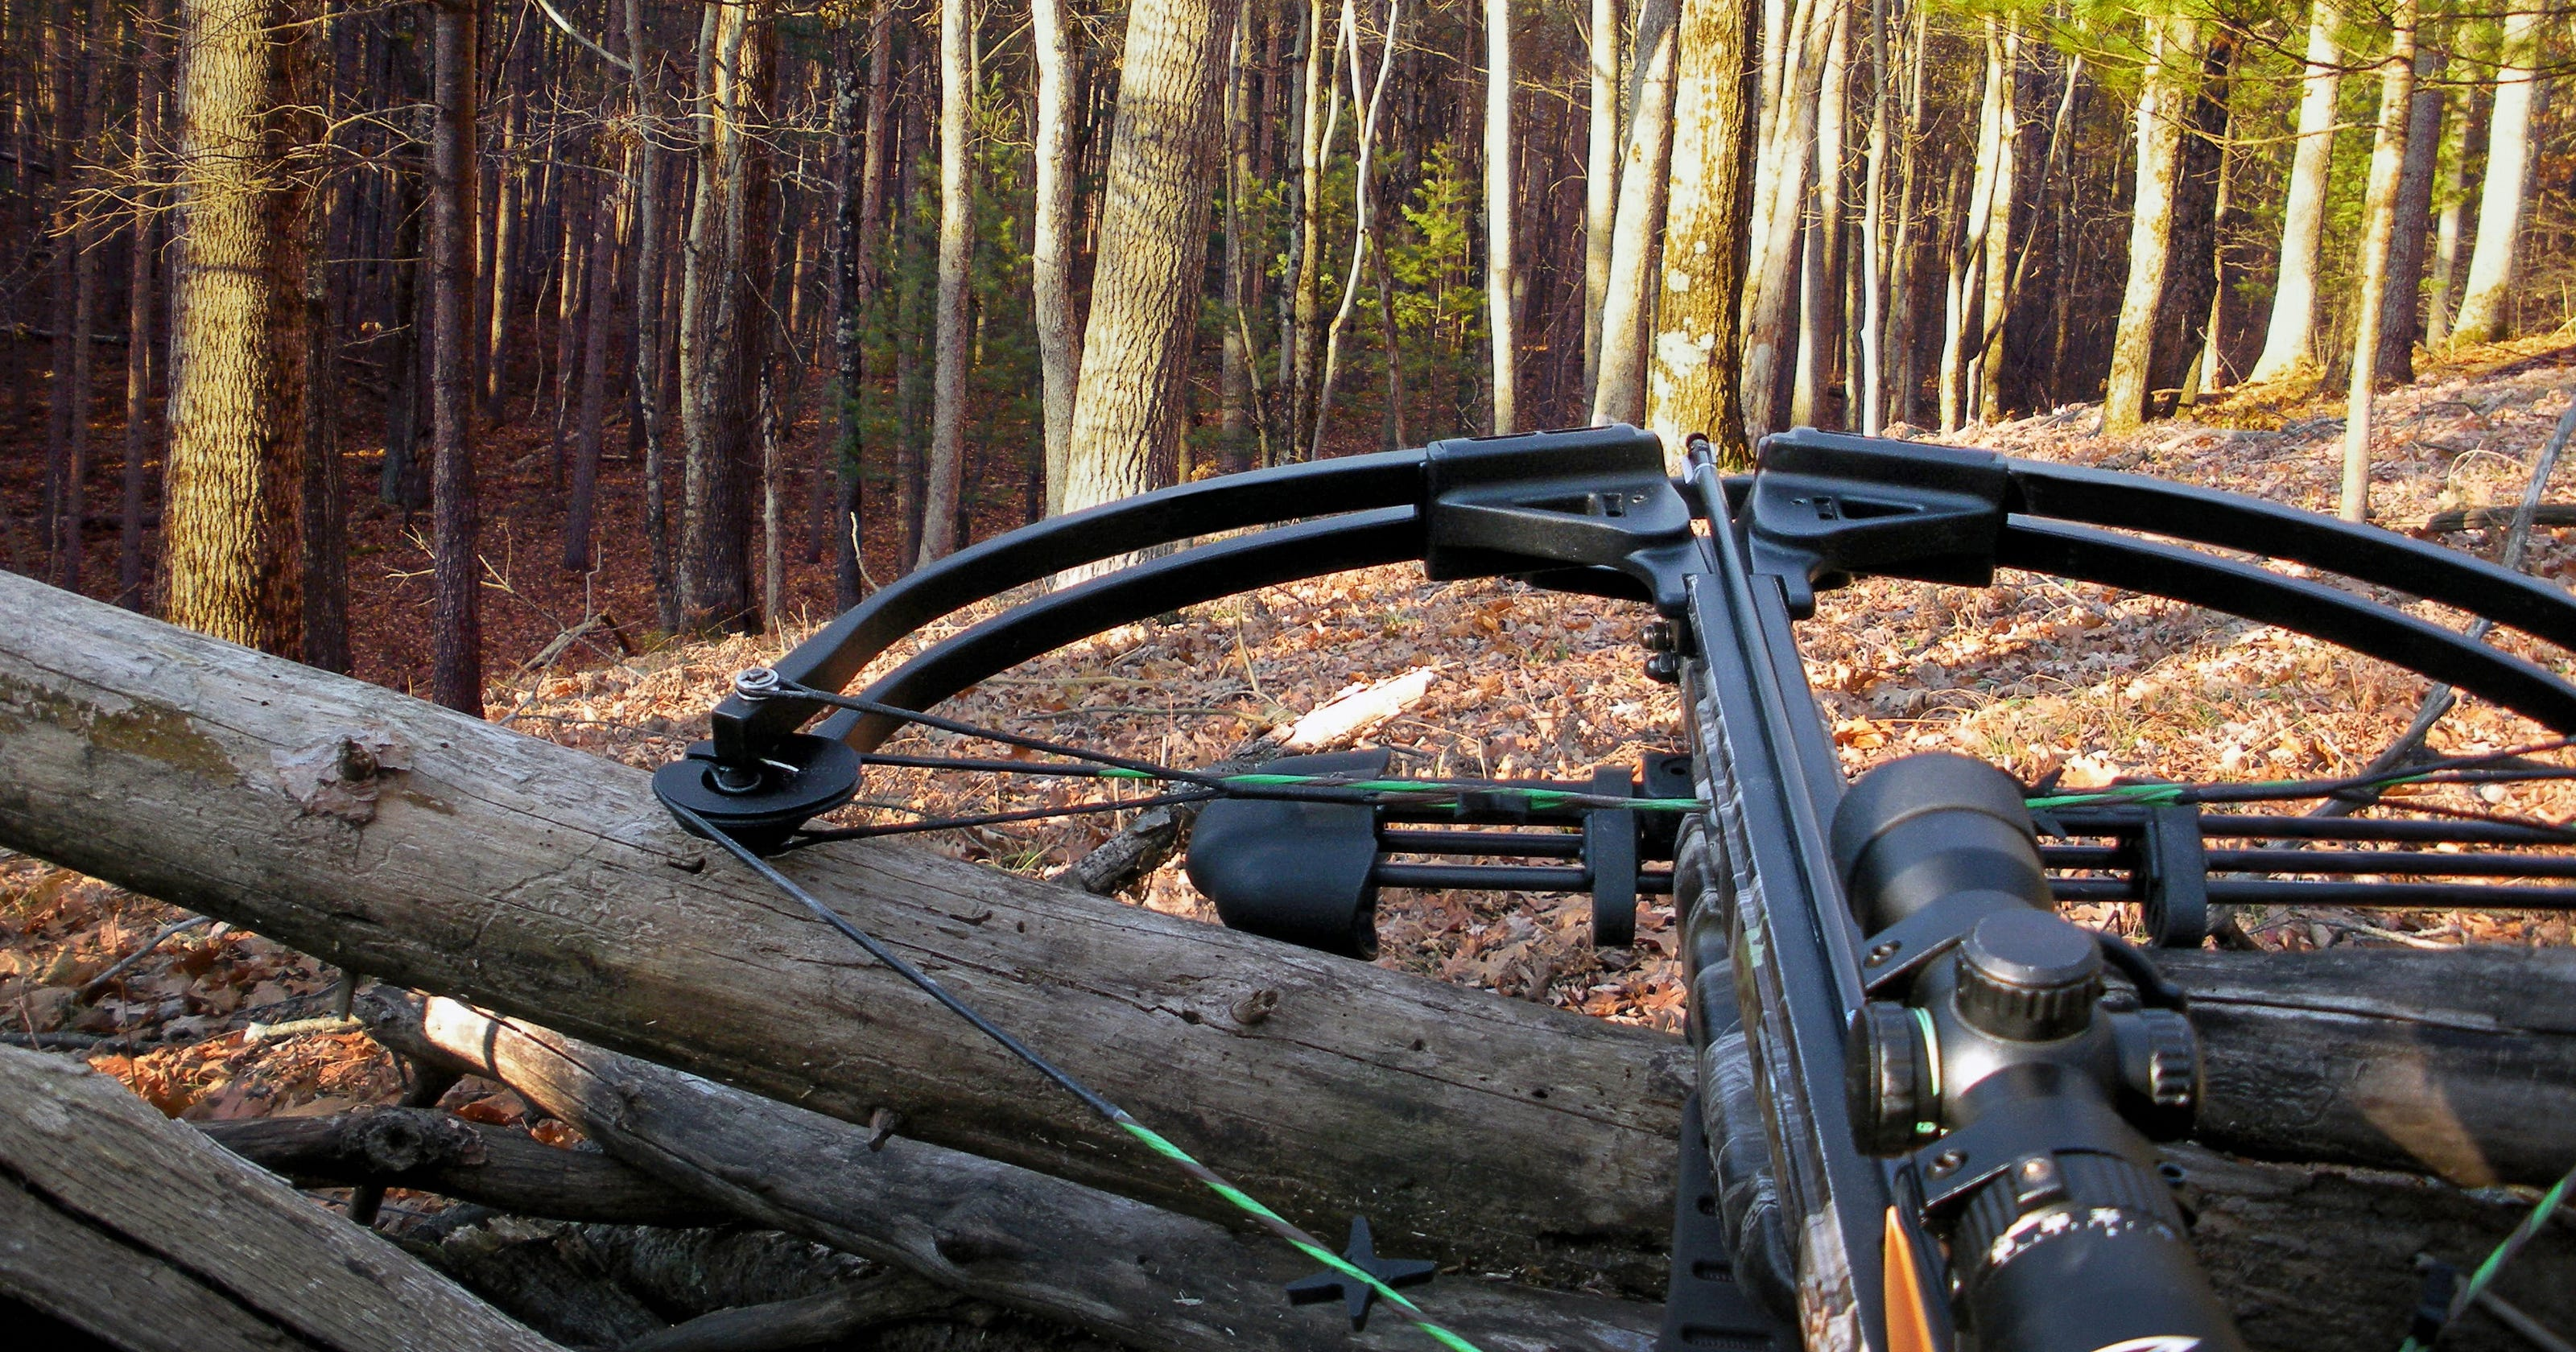 NY's crossbow season: Rules you need to know